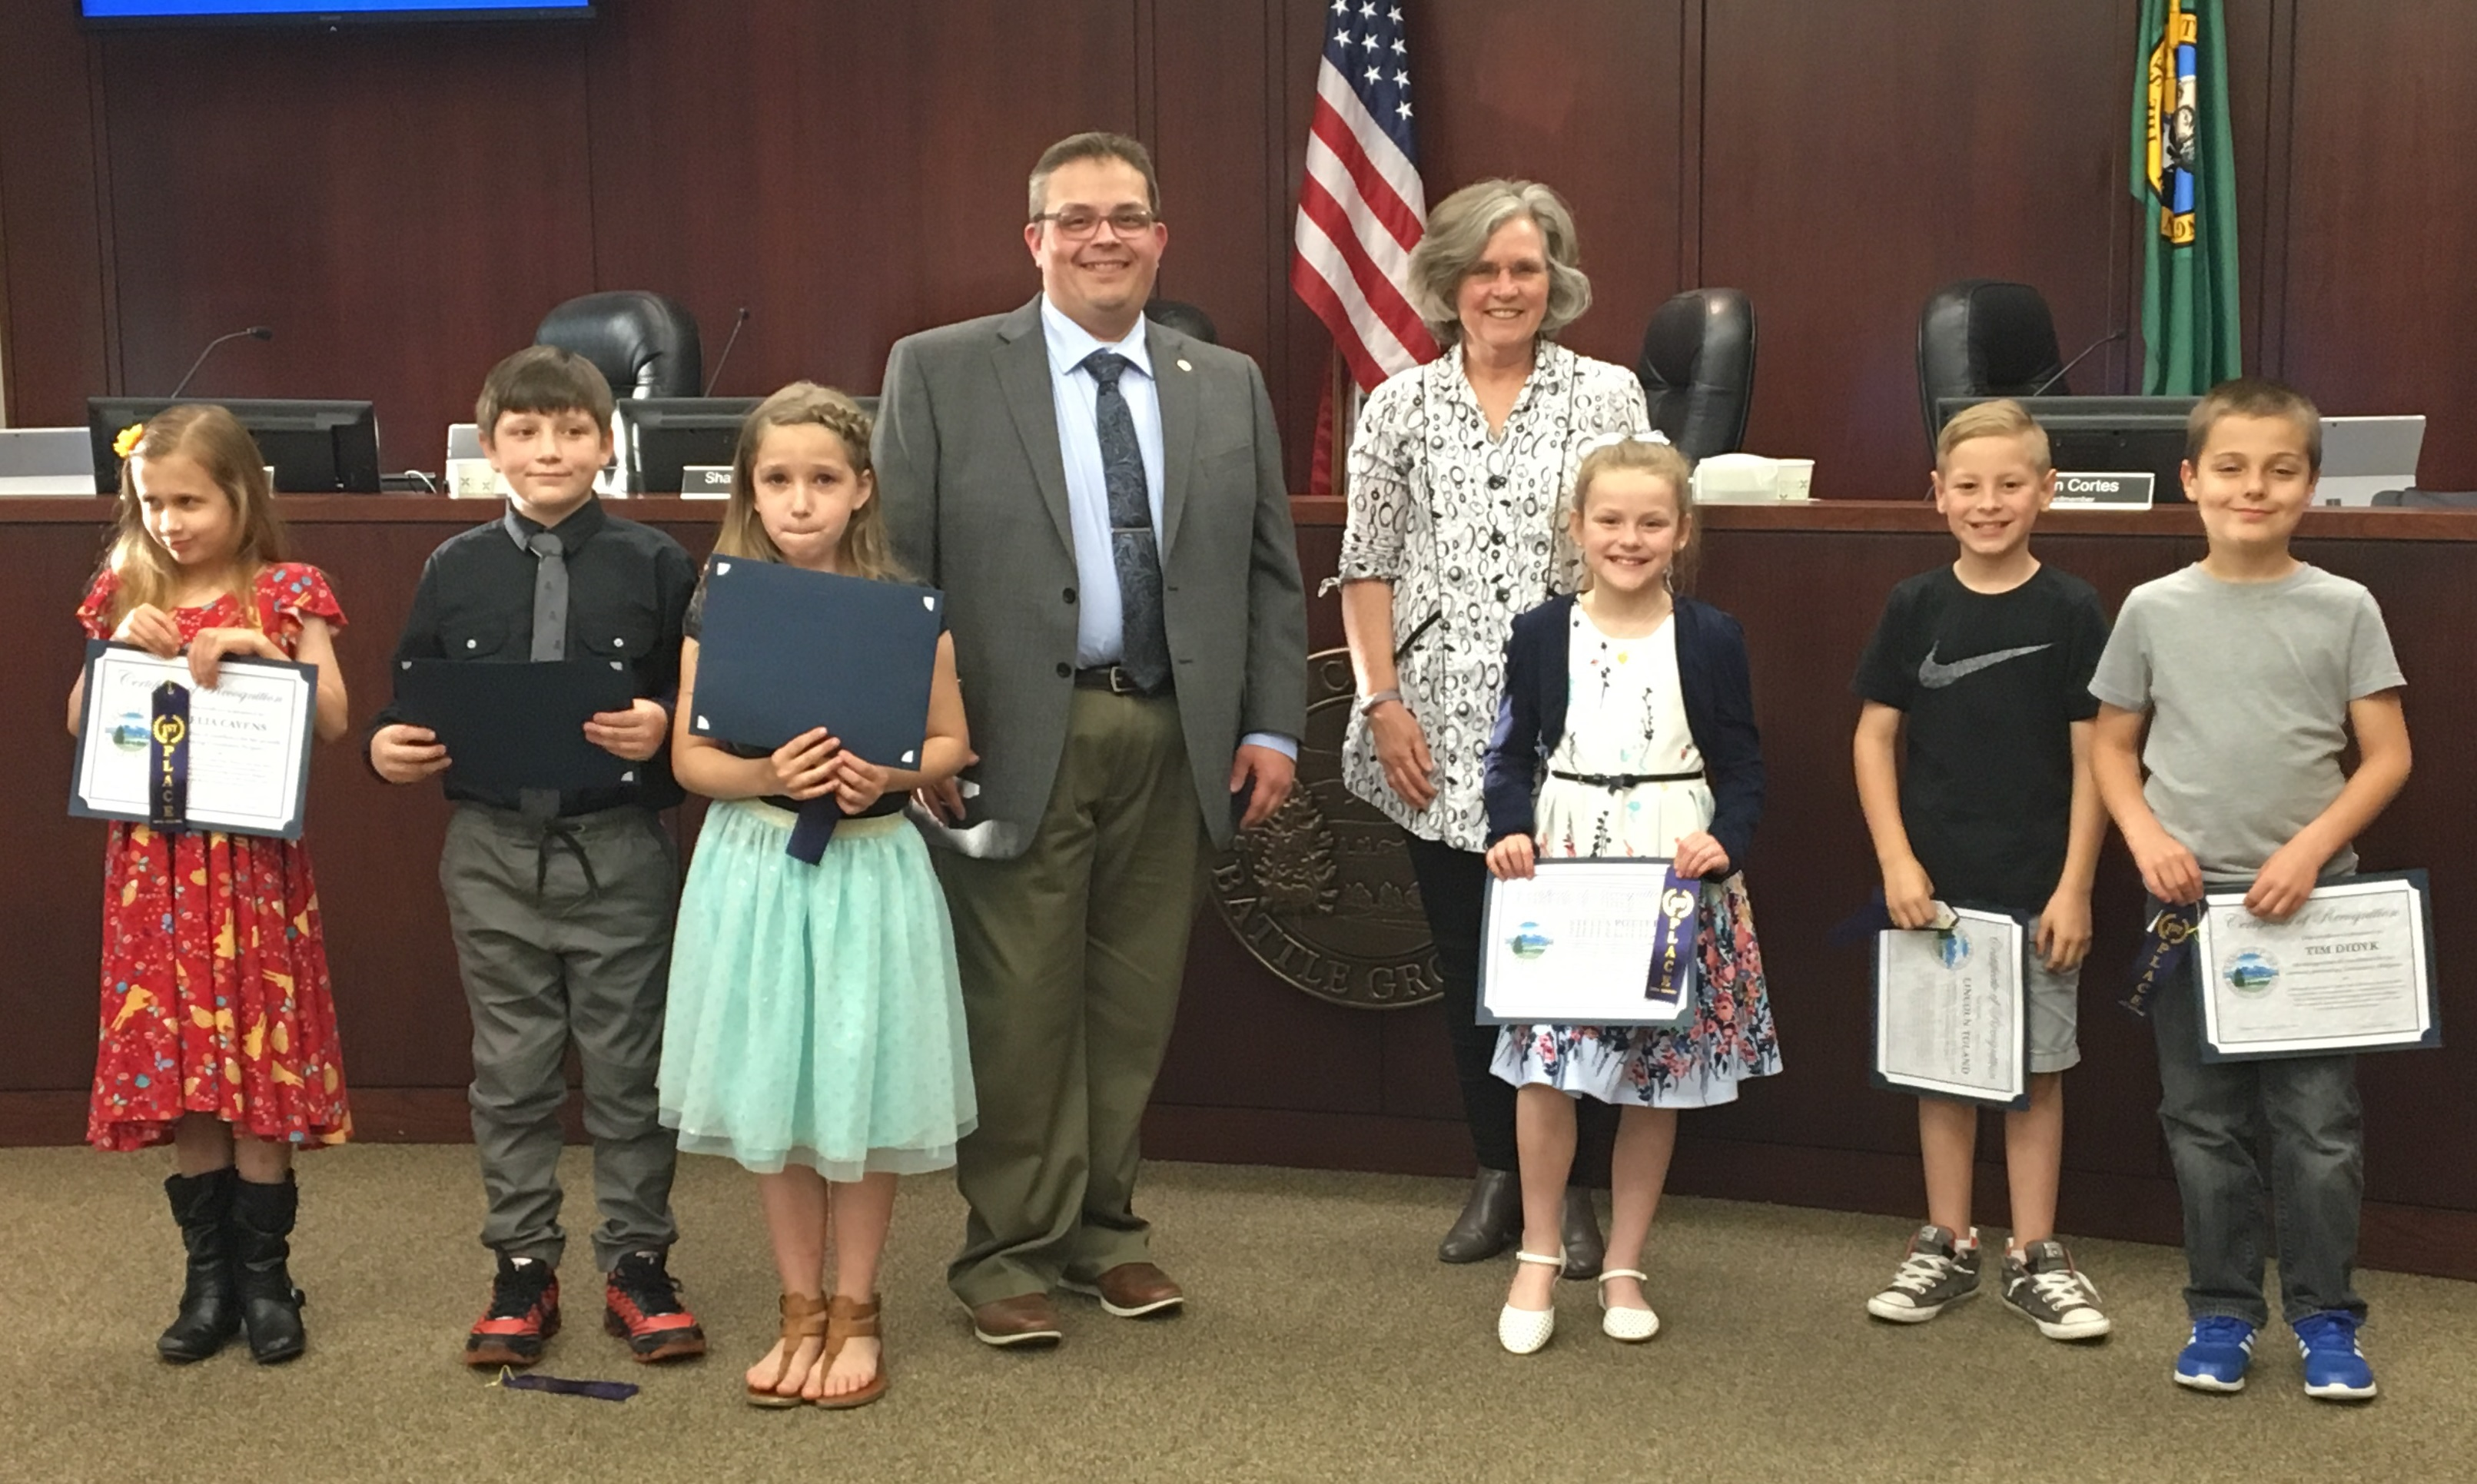 The art of 6 students were selected by the Battle Ground Art Alliance to receive special recognition at the May 7 City Council meeting.